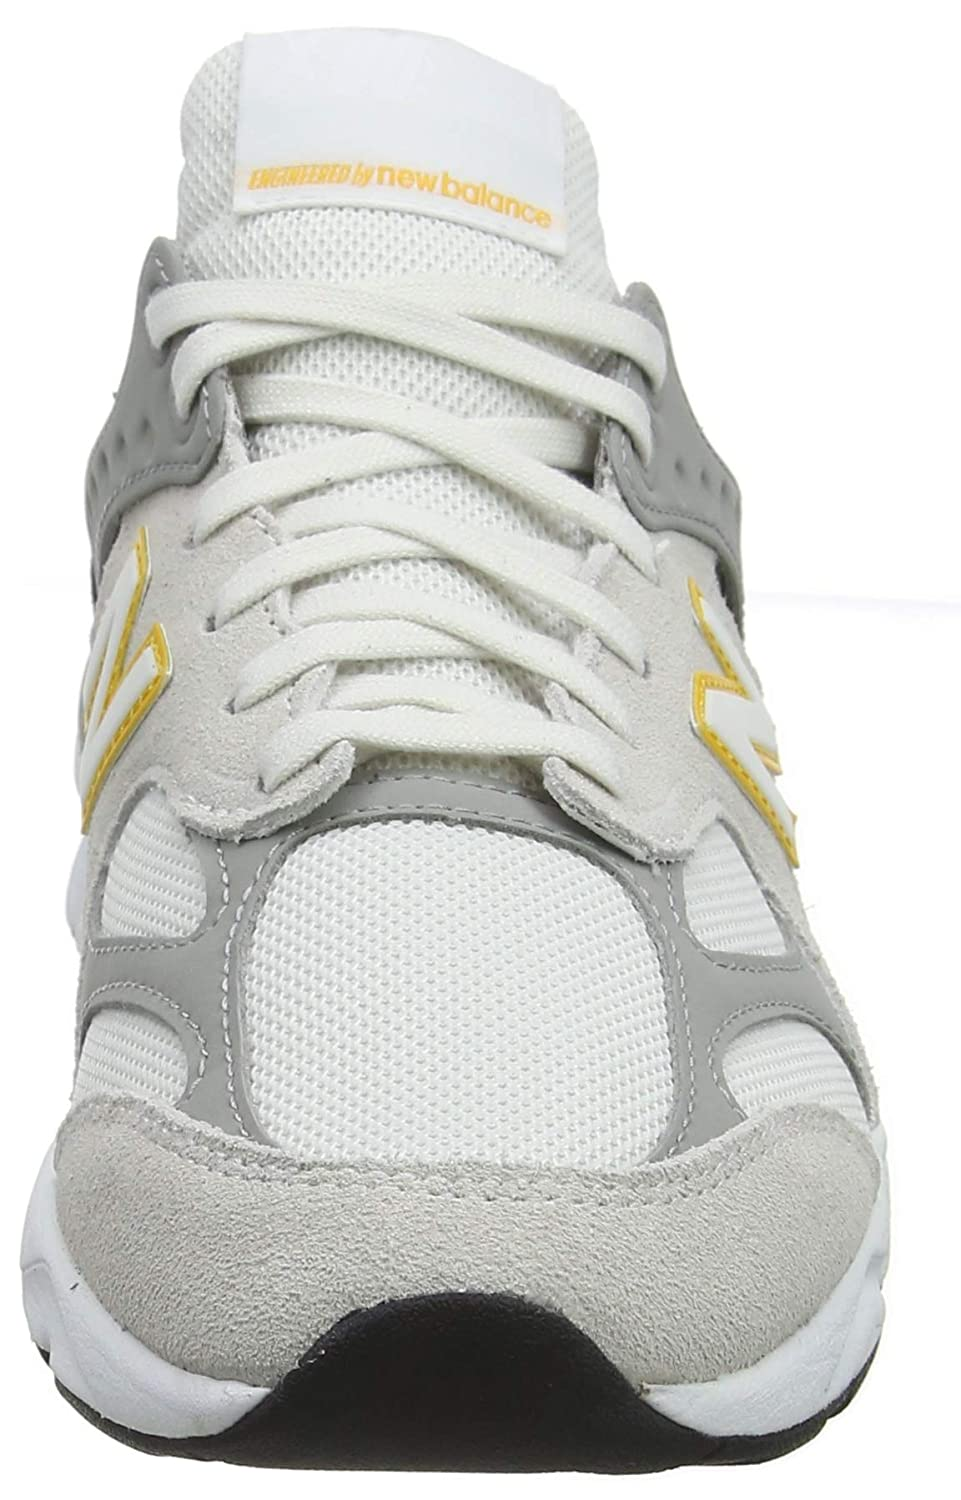 9d7a1abfcd4b7 New Balance Women's X-90 Trainers: Amazon.co.uk: Shoes & Bags